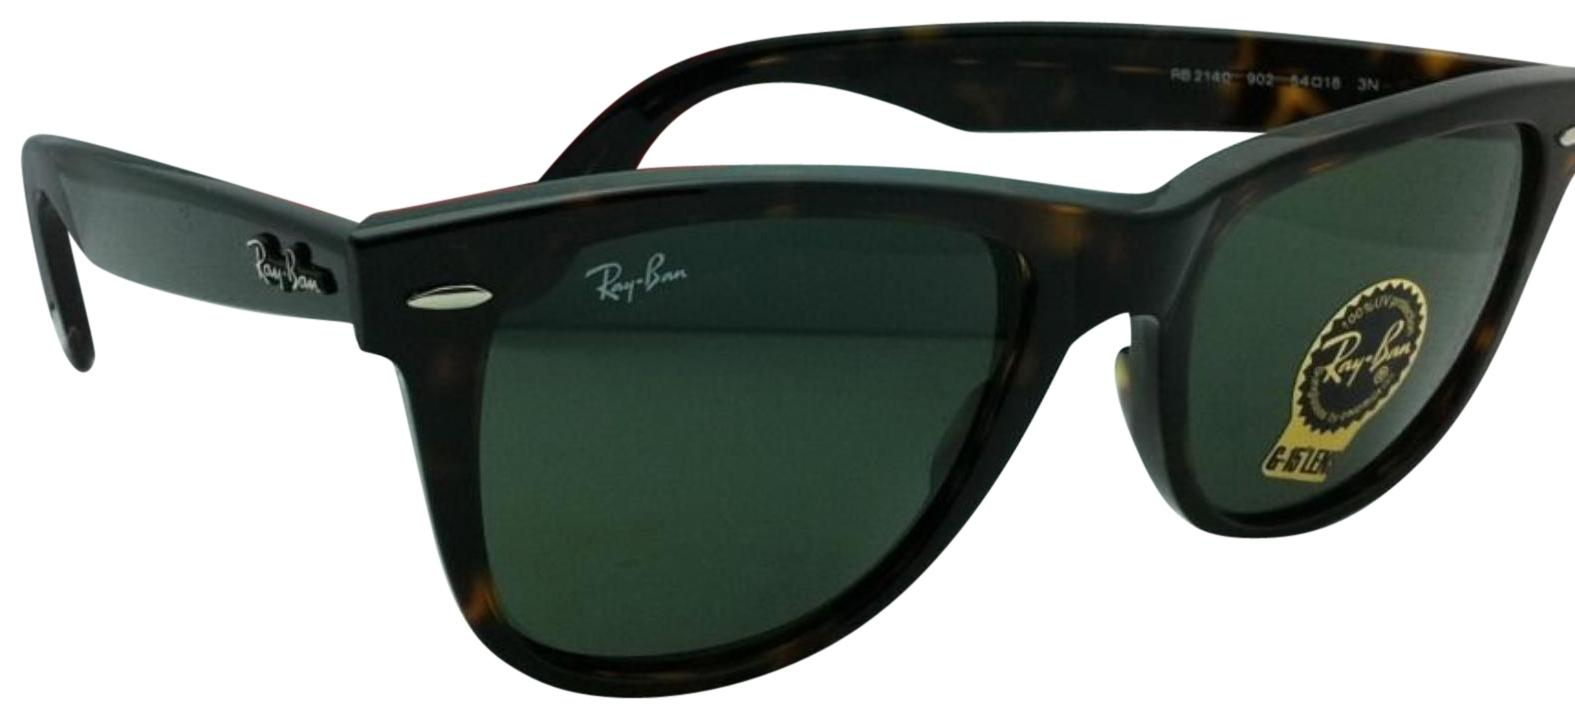 f9ebf39cc7 ... coupon code for ray ban new ray ban sunglasses rb 2140 902 54 18 wayfarer  tortoise